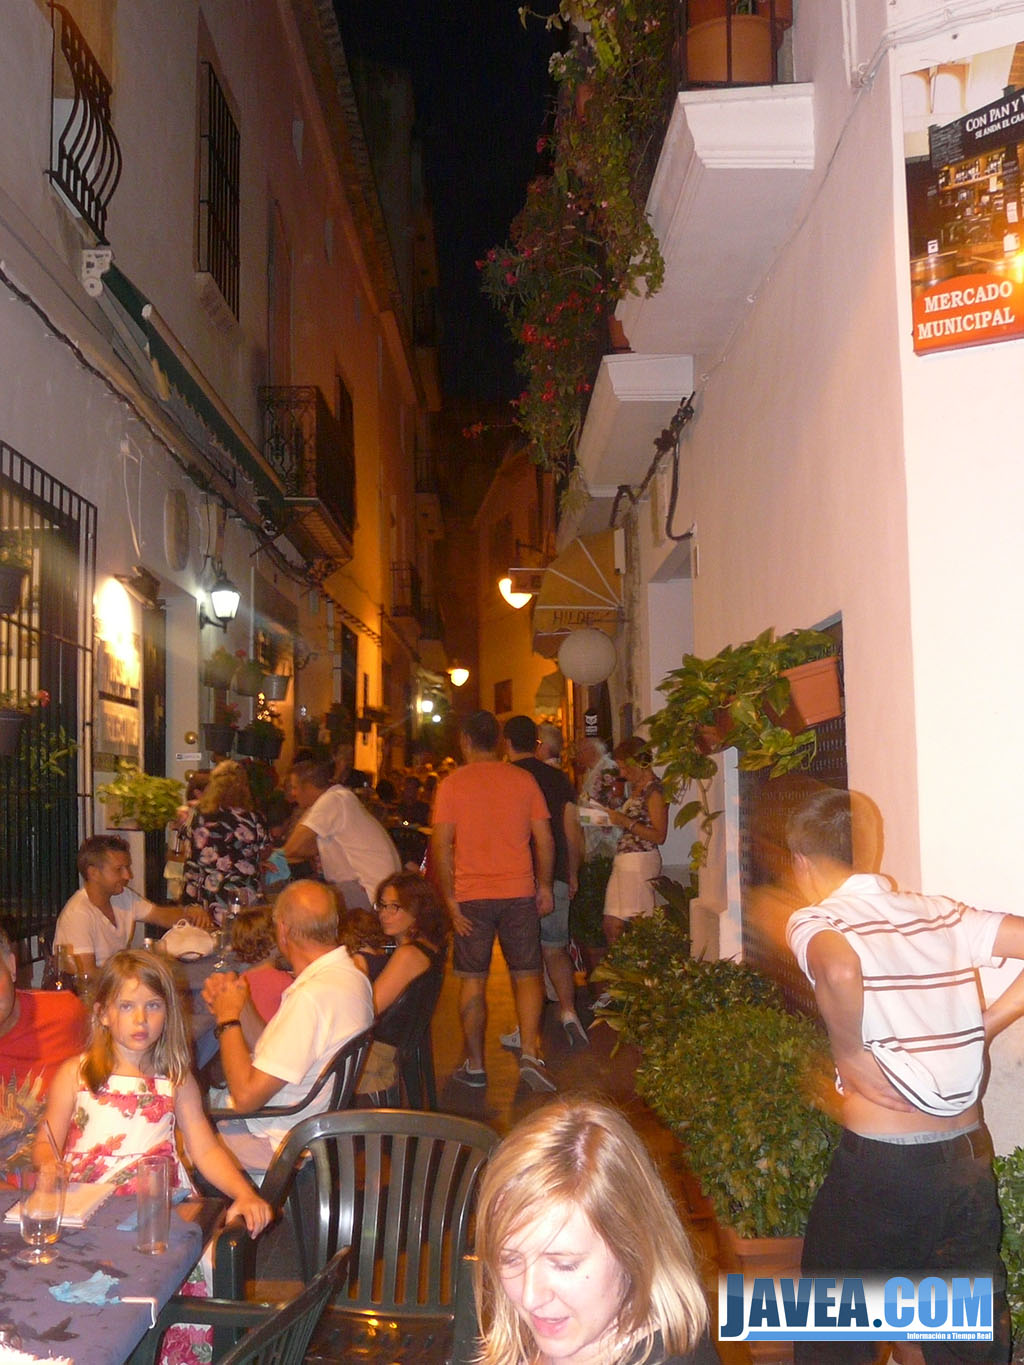 Las calles del Casco Antiguo se han llenado de gente durante la shopping night